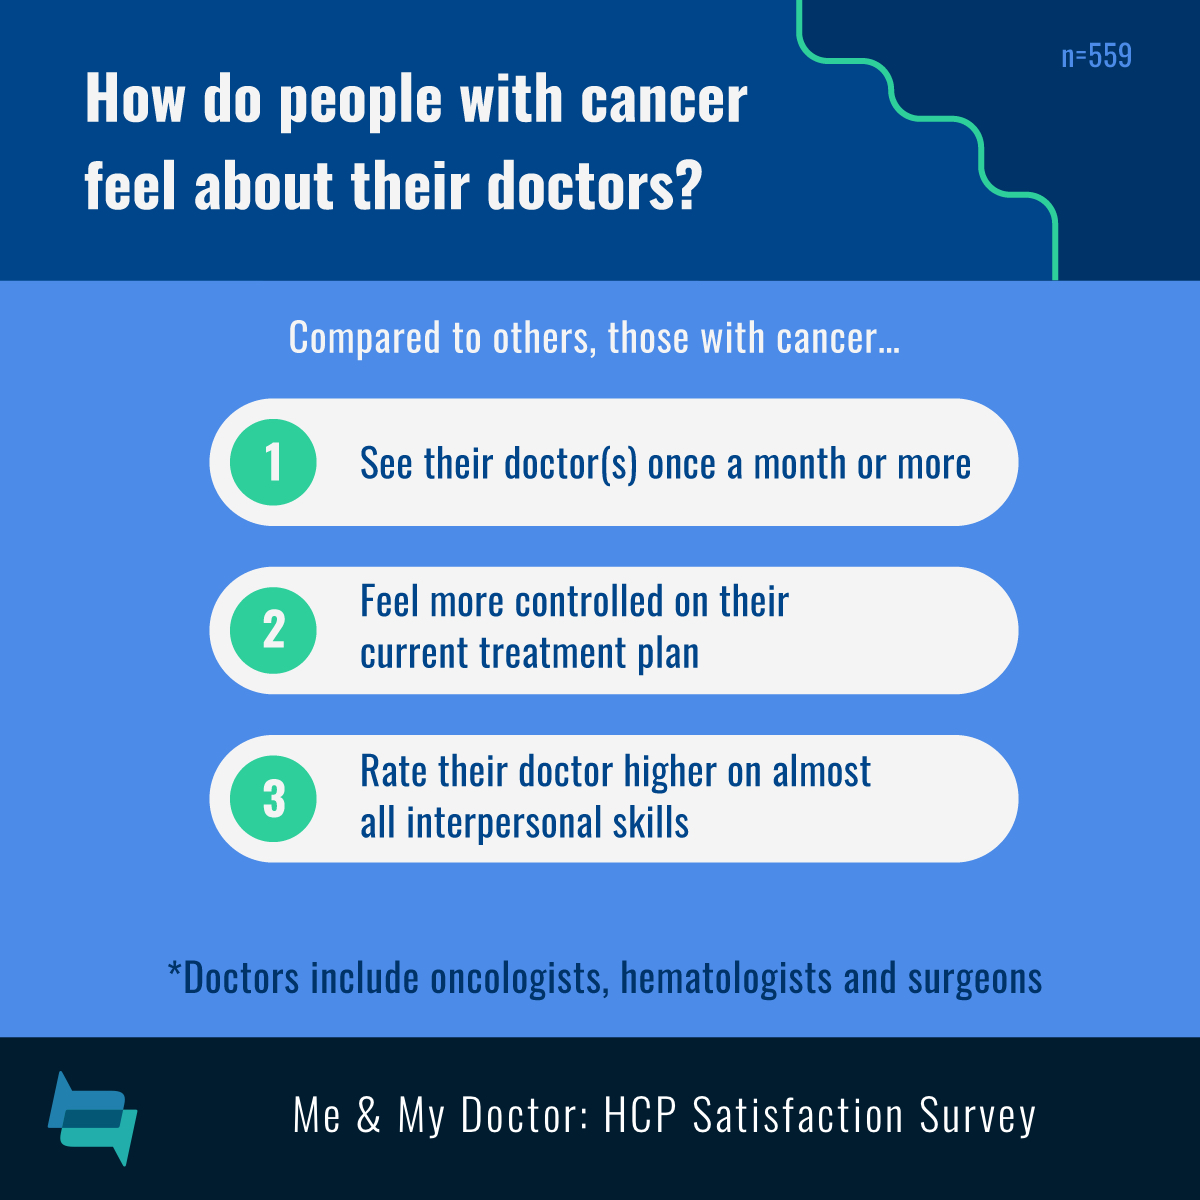 Cancer patients visit doctors more often, rate doctors higher on interpersonal skills, and feel more controlled on their treatment plan.